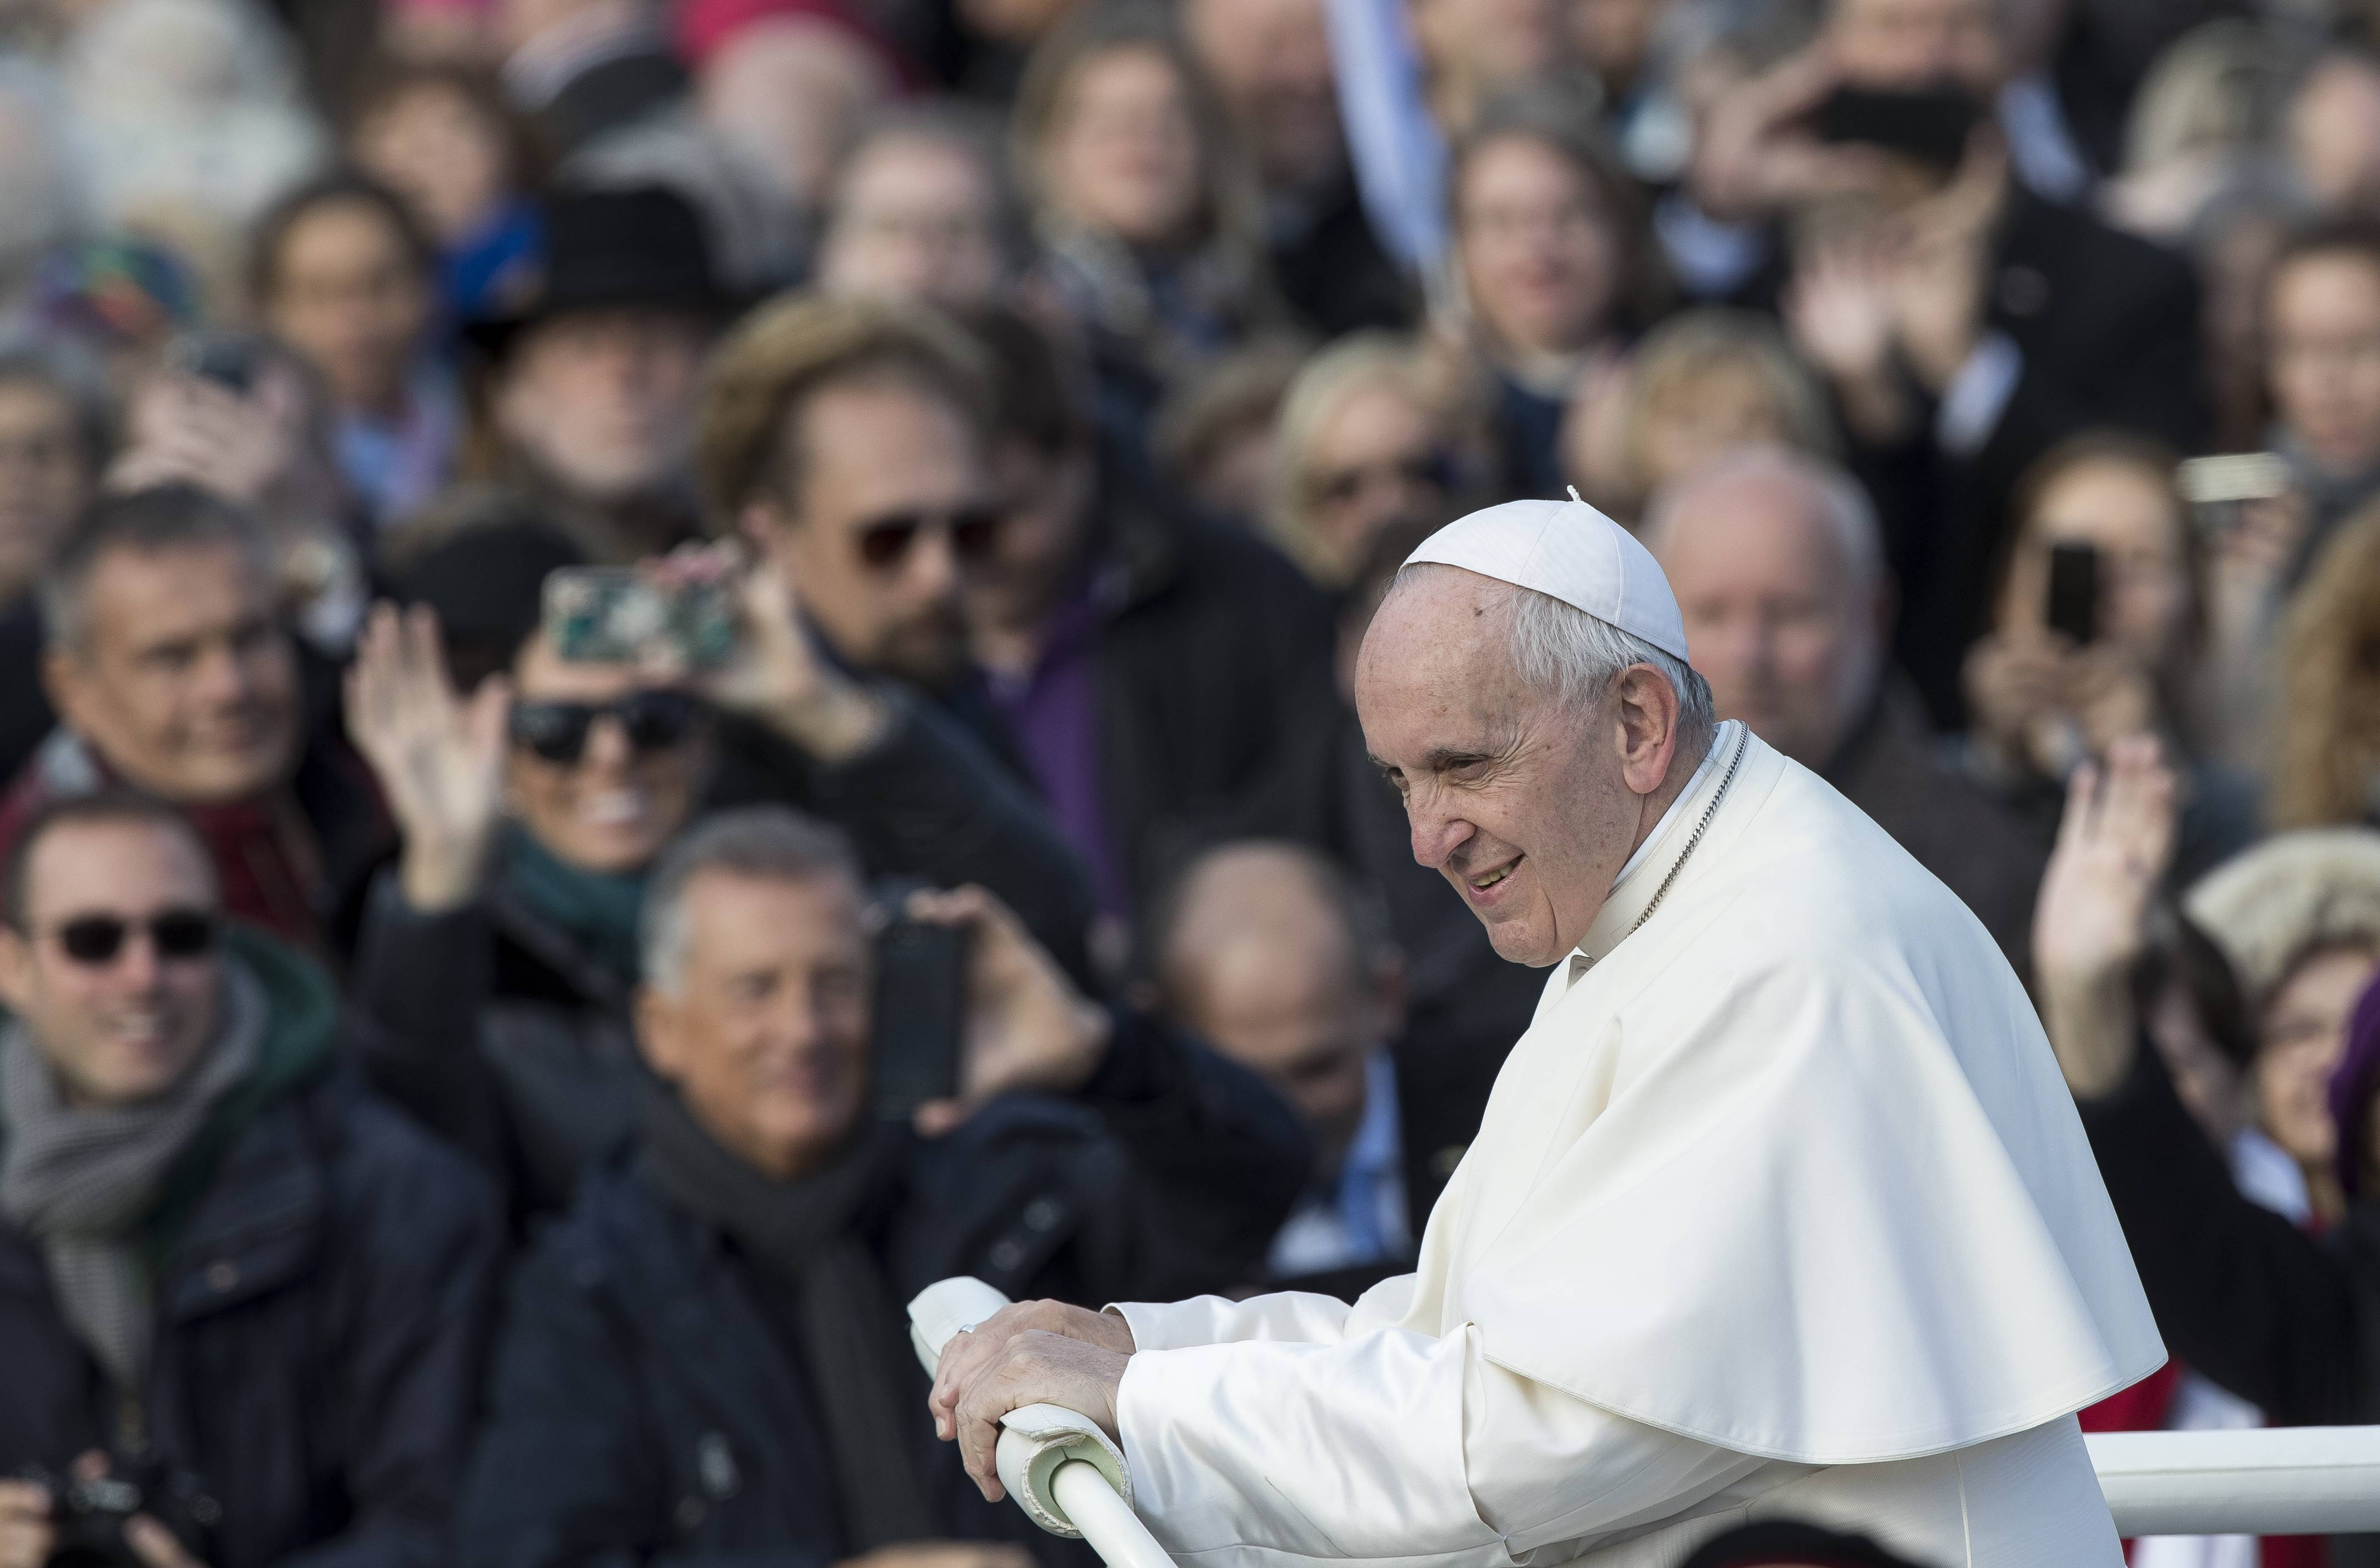 Pope Francis arrives to celebrate a Mass in Freedom Square, in Tallinn, Estonia, Tuesday, Sept. 25, 2018. Pope Francis concludes his four-day tour of the Baltics visiting Estonia.